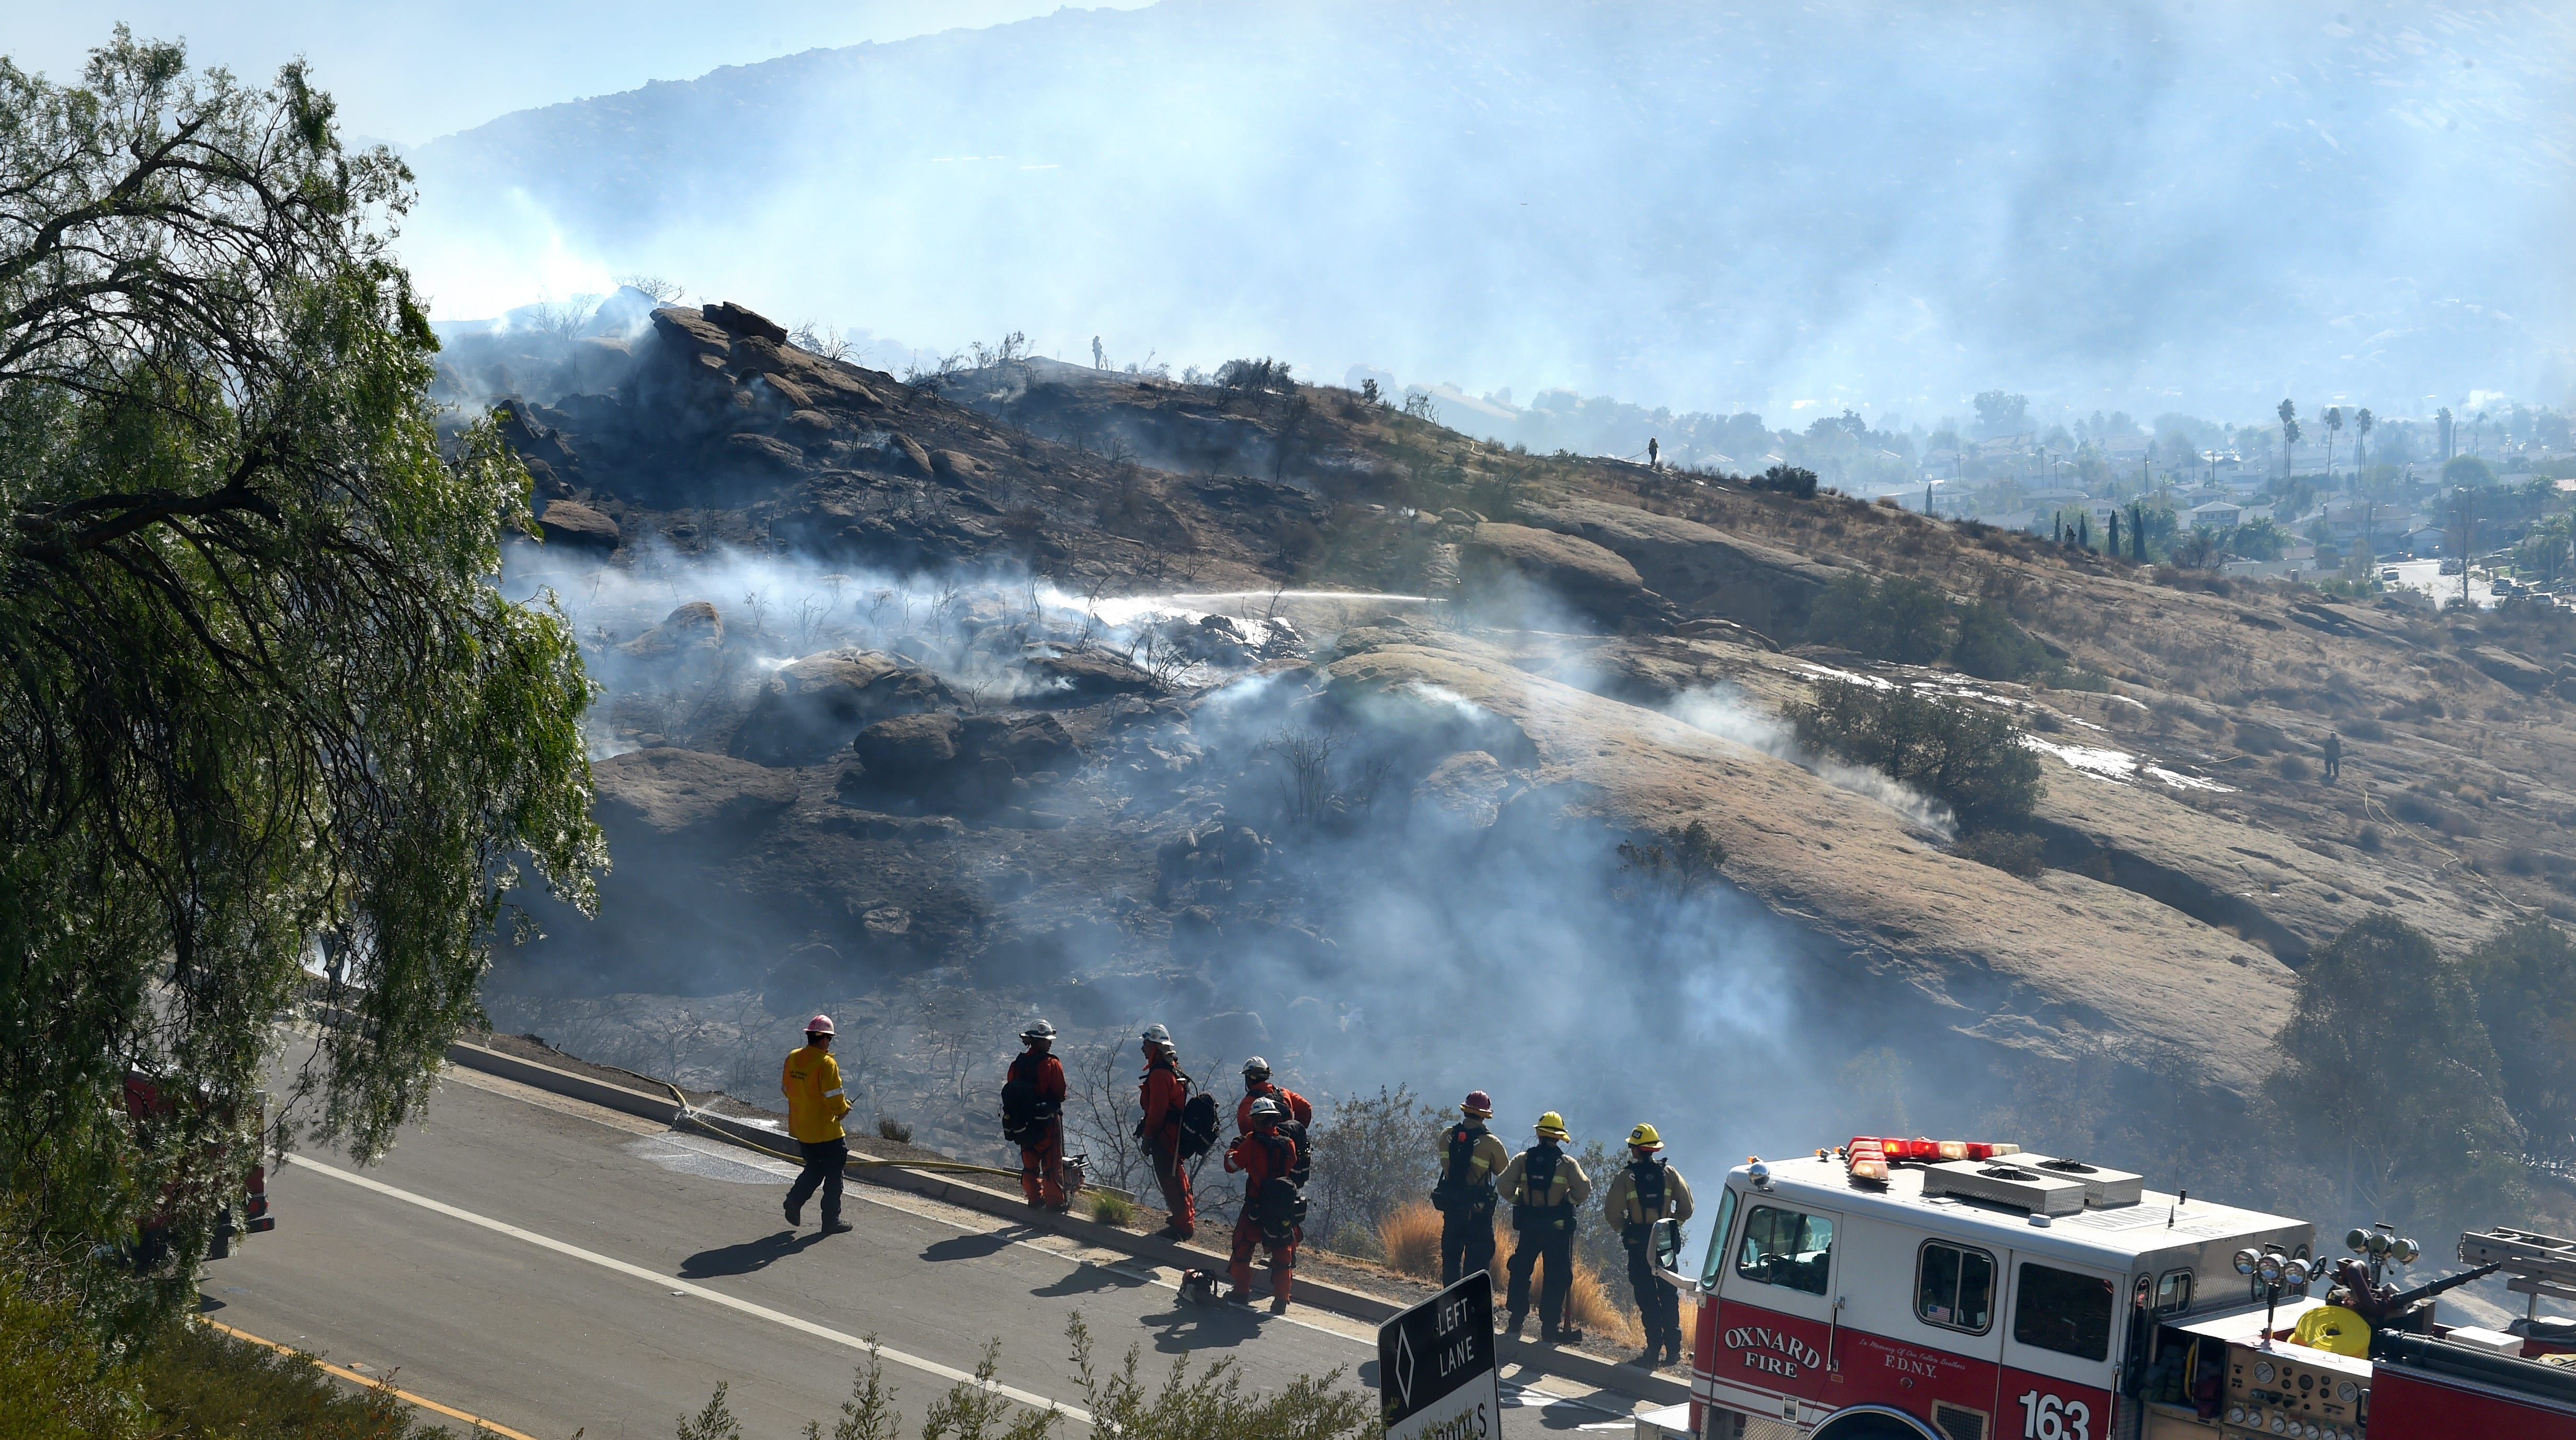 Firefighters watch as smoke rises over the hills along Highway 118 in Simi Valley, where a brushfire threatened several structures as it burned nearly 100 acres on Monday.